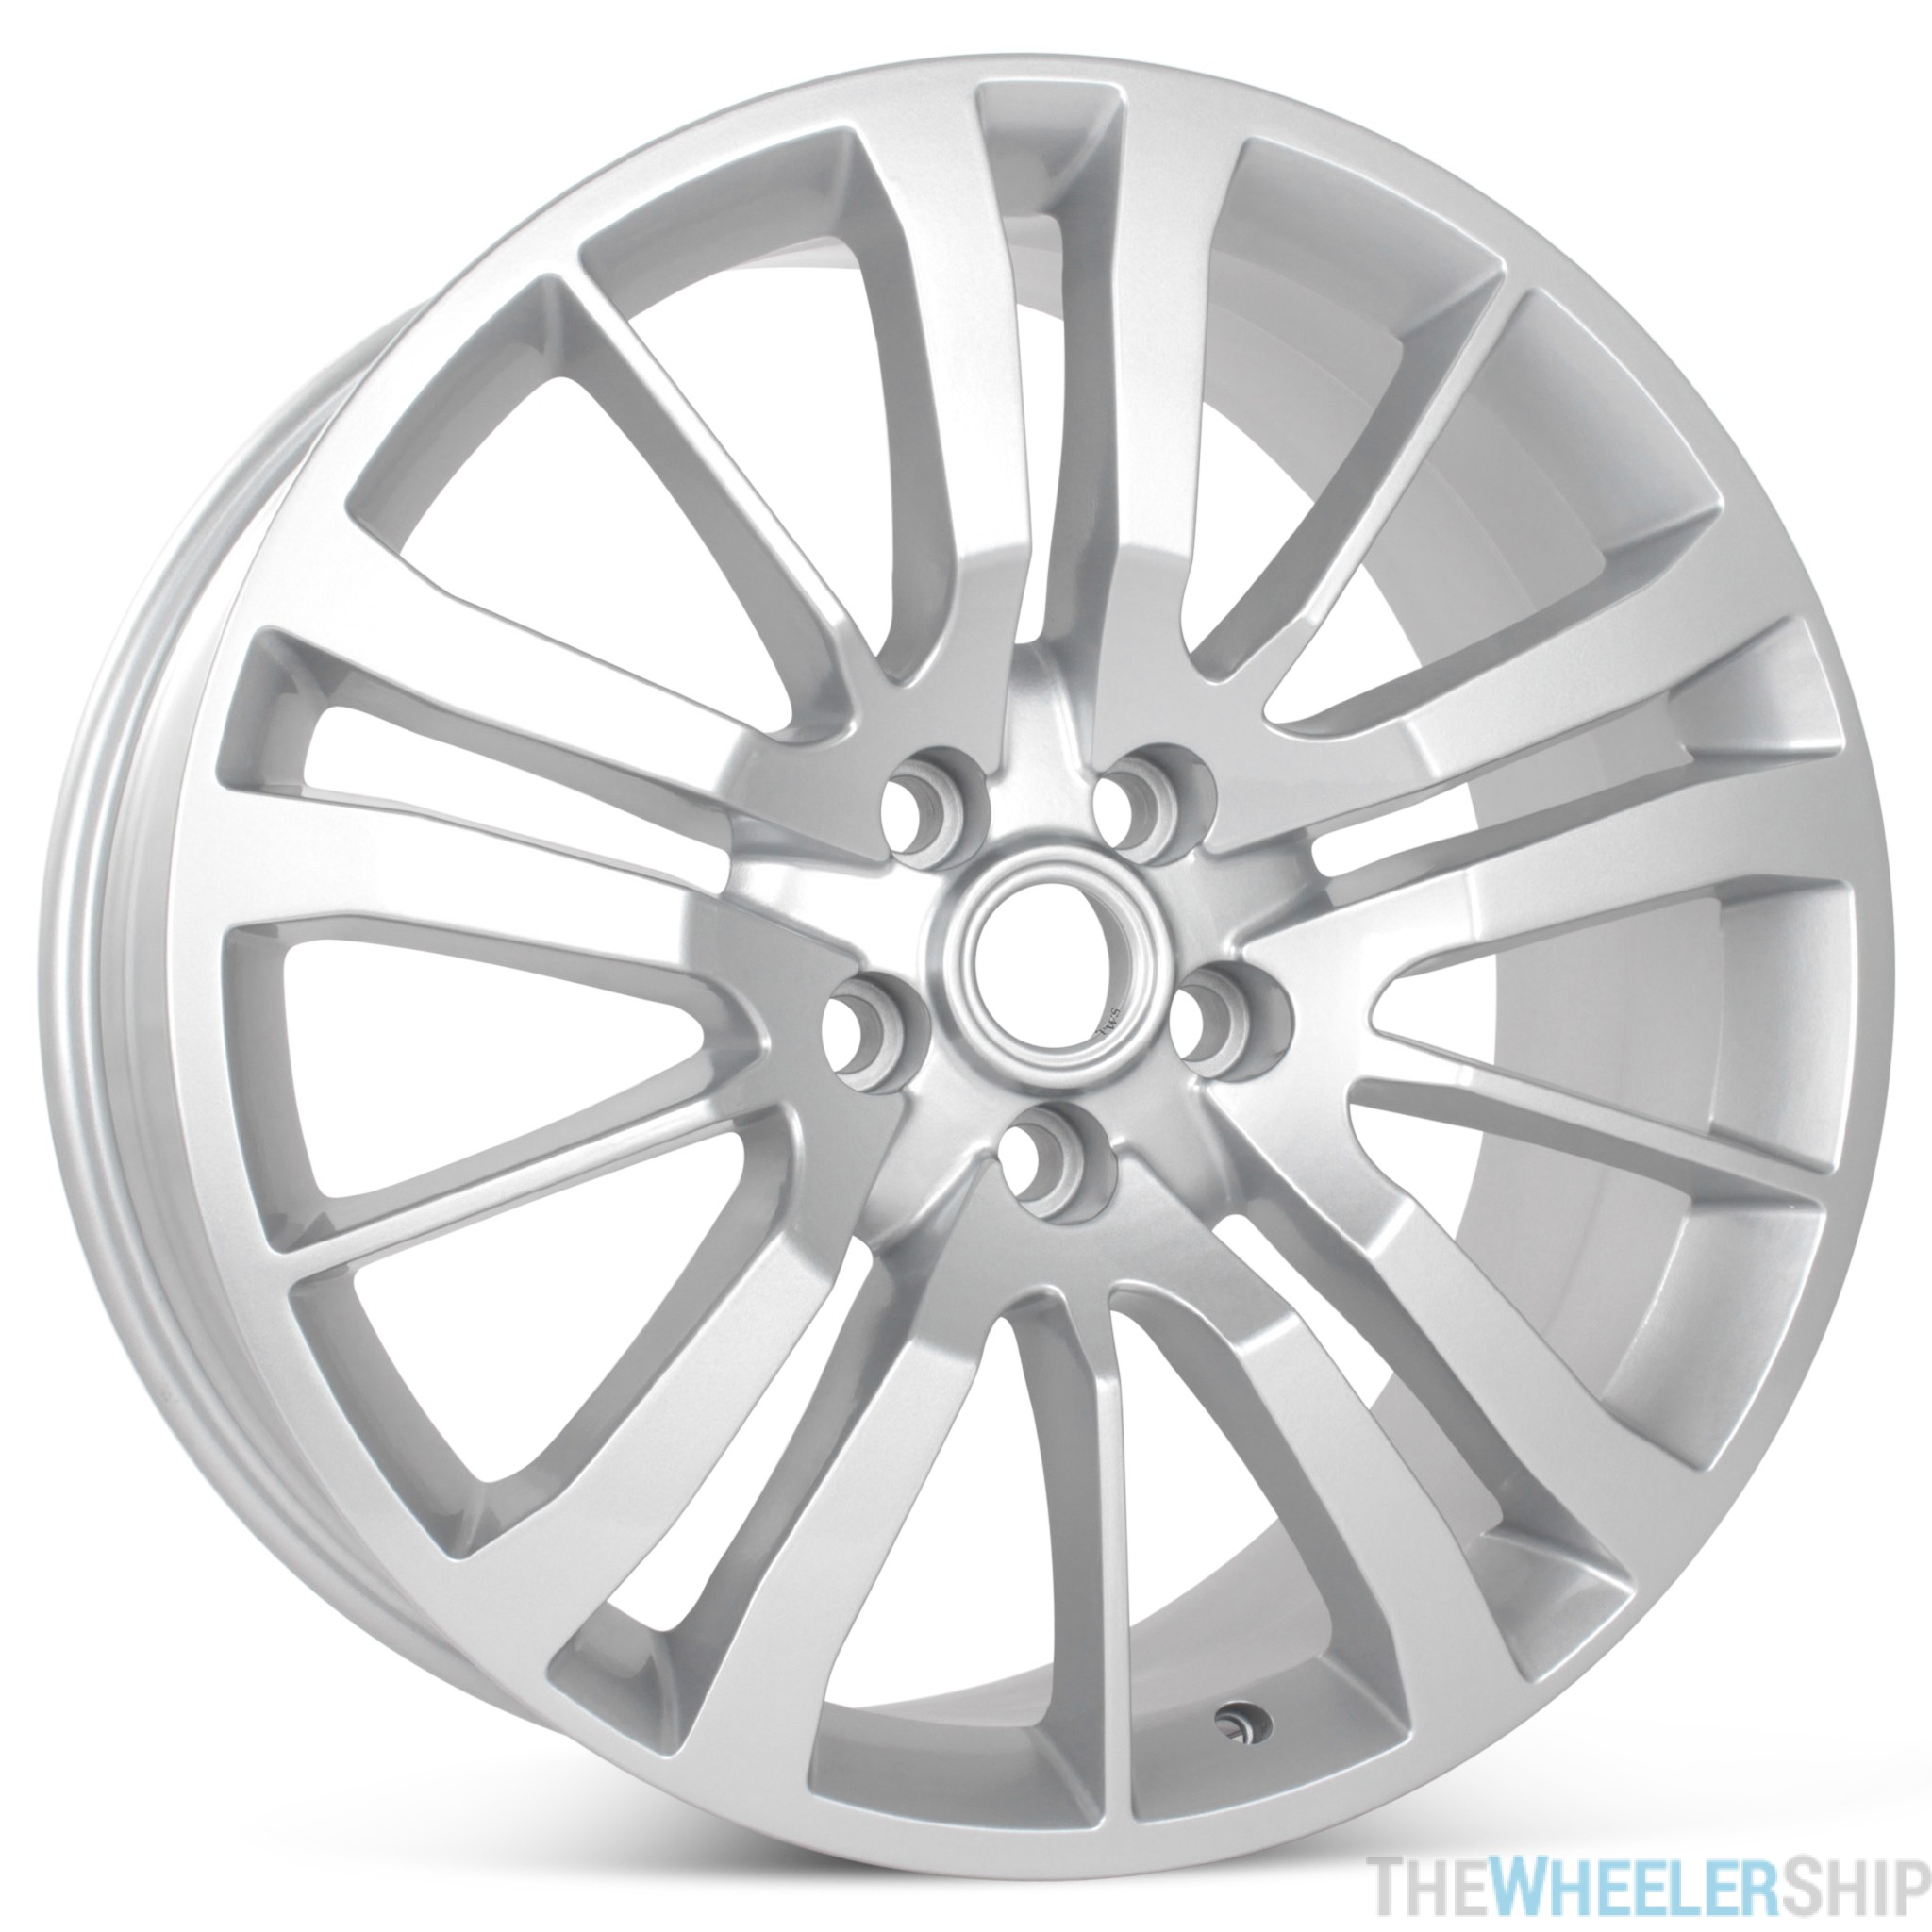 New 20 x 9.5 Replacement Wheel for Range Rover Sport 2009 2010 2011 2012 2013 Rim 72208